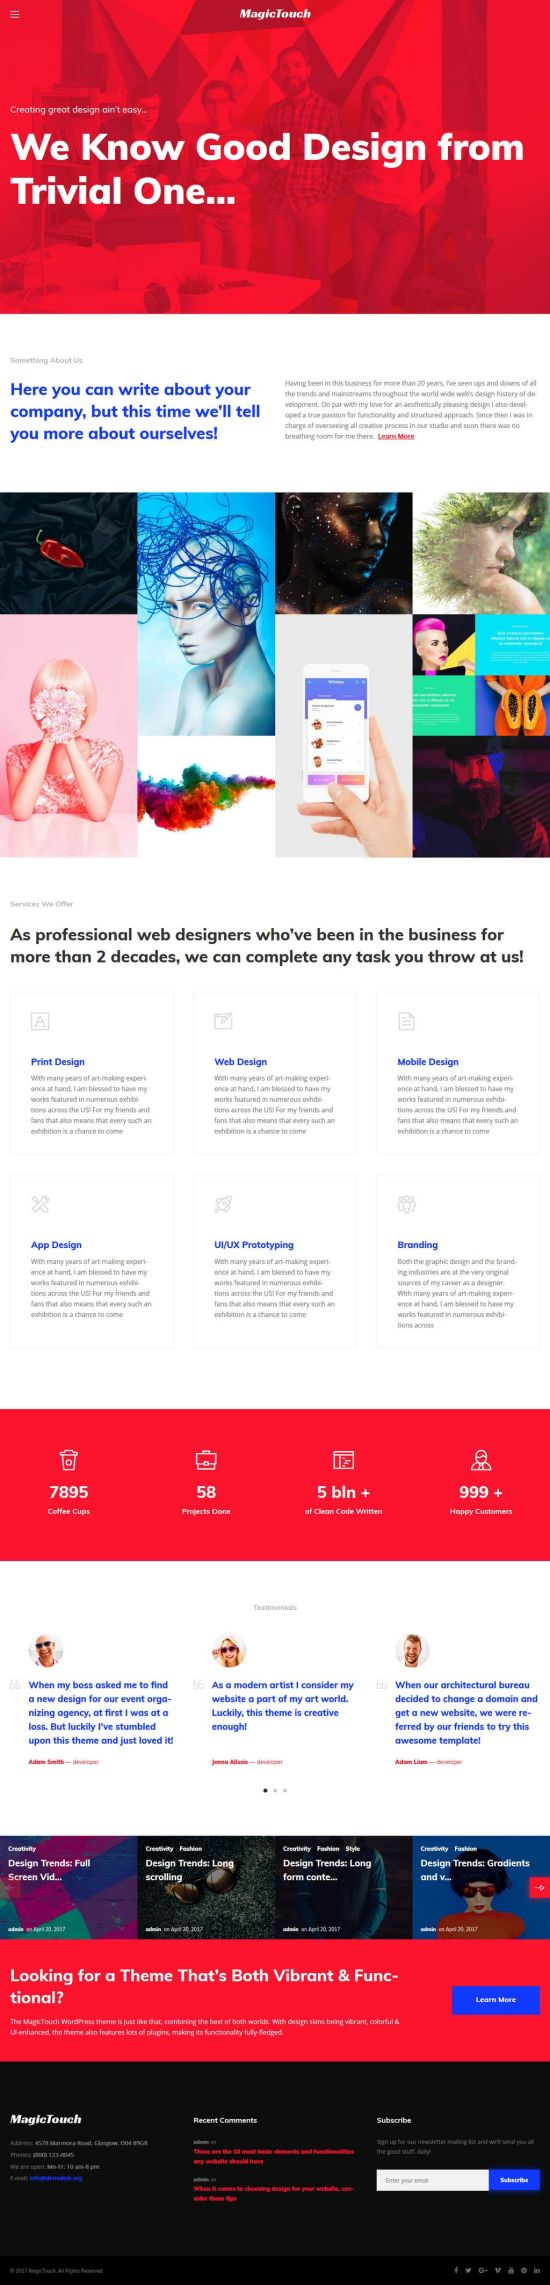 magictouch wordpress theme templatemonster 01 - MagicTouch WordPress Theme